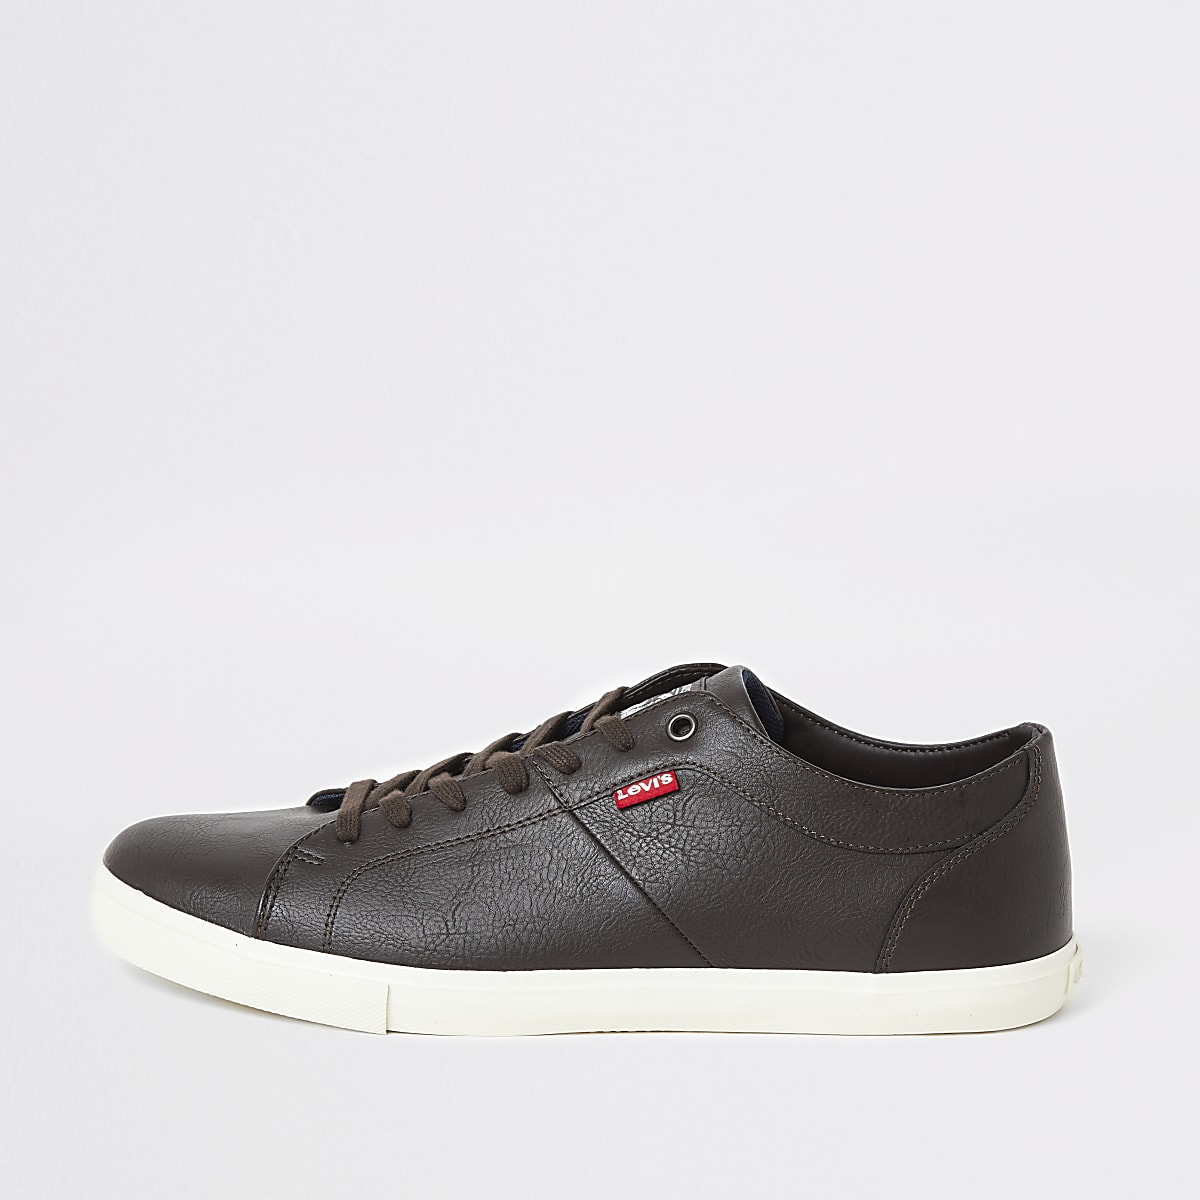 Levi's dark brown Woods trainers